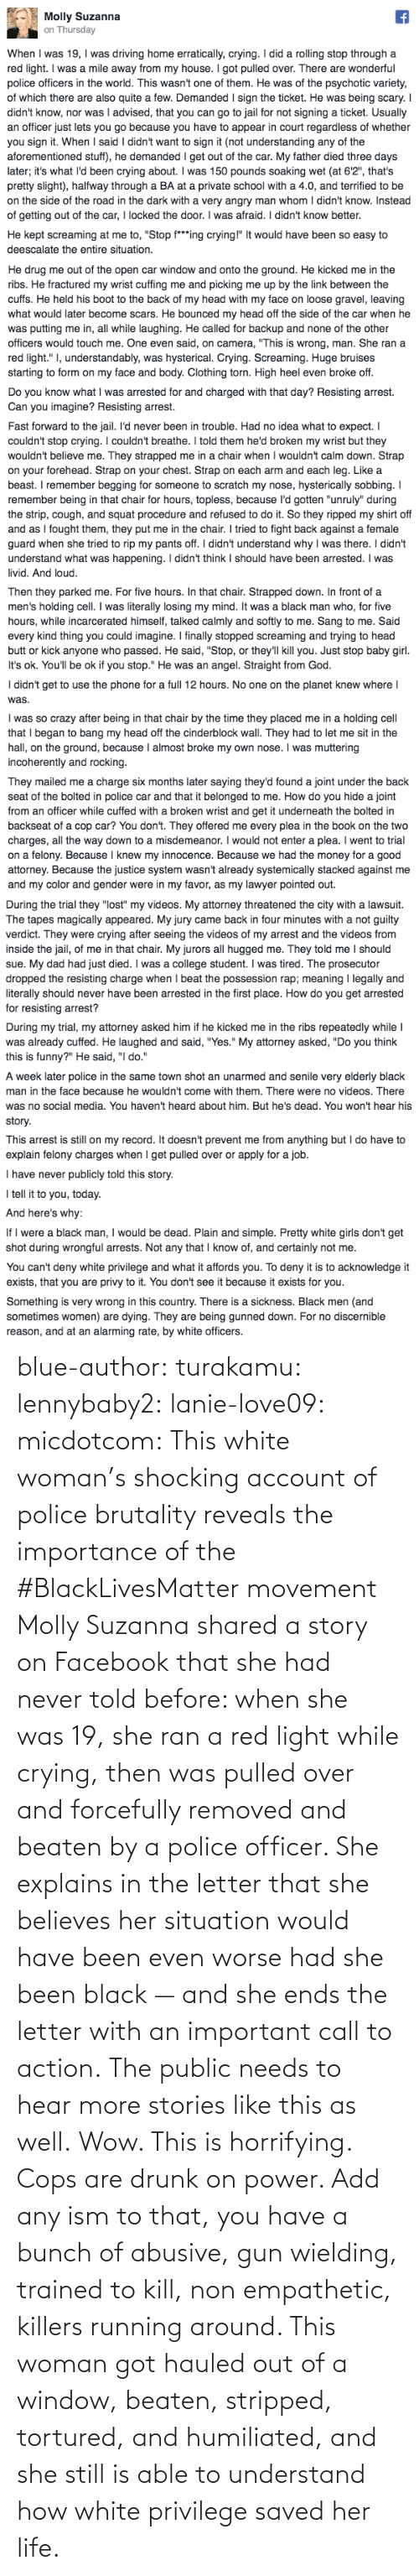 over: blue-author: turakamu:  lennybaby2:  lanie-love09:  micdotcom:  This white woman's shocking account of police brutality reveals the importance of the #BlackLivesMatter movement Molly Suzanna shared a story on Facebook that she had never told before: when she was 19, she ran a red light while crying, then was pulled over and forcefully removed and beaten by a police officer. She explains in the letter that she believes her situation would have been even worse had she been black — and she ends the letter with an important call to action.  The public needs to hear more stories like this as well.  Wow. This is horrifying.  Cops are drunk on power. Add any ism to that, you have a bunch of abusive, gun wielding, trained to kill, non empathetic, killers running around.    This woman got hauled out of a window, beaten, stripped, tortured, and humiliated, and she still is able to understand how white privilege saved her life.